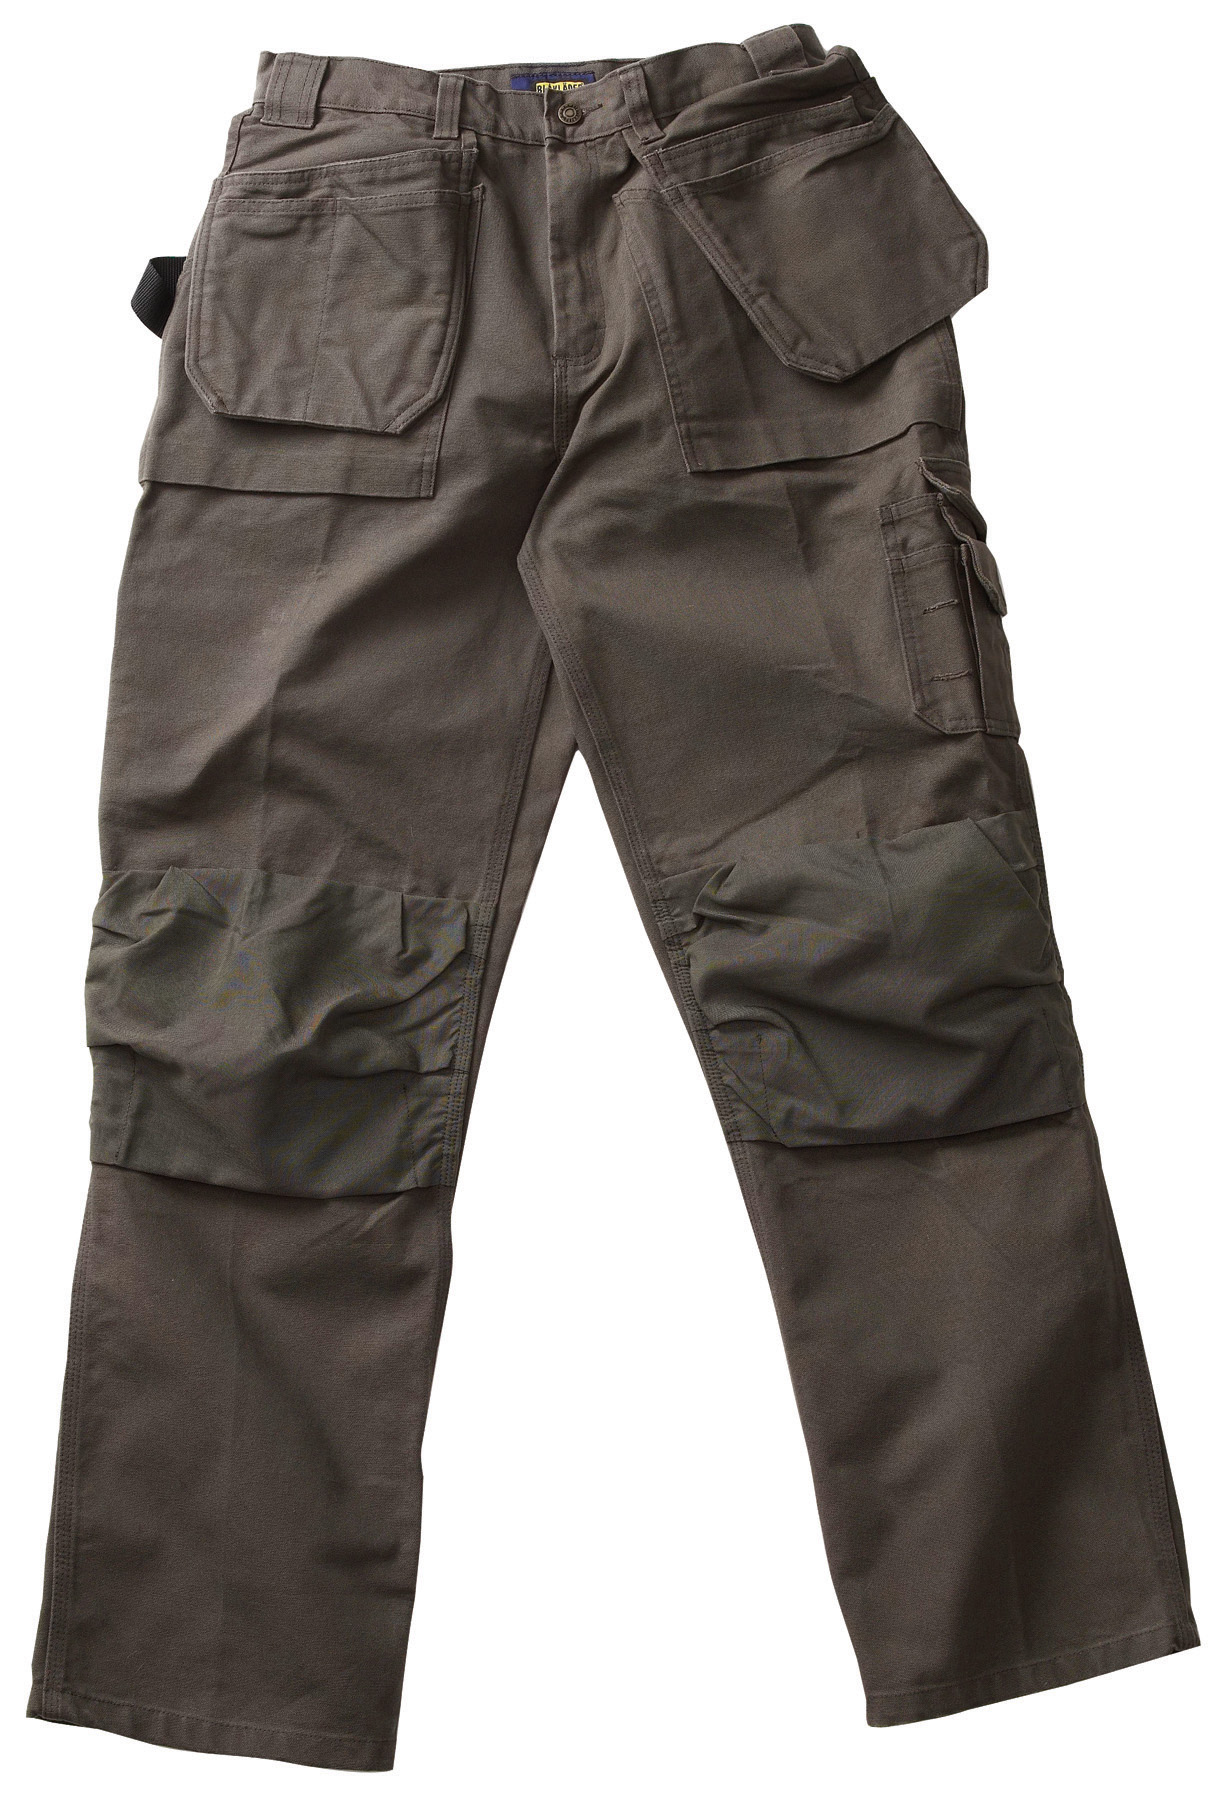 Brawny pant: The Brawny is made of a 12 oz. cotton canvas for heightened durability in tougher work conditions.